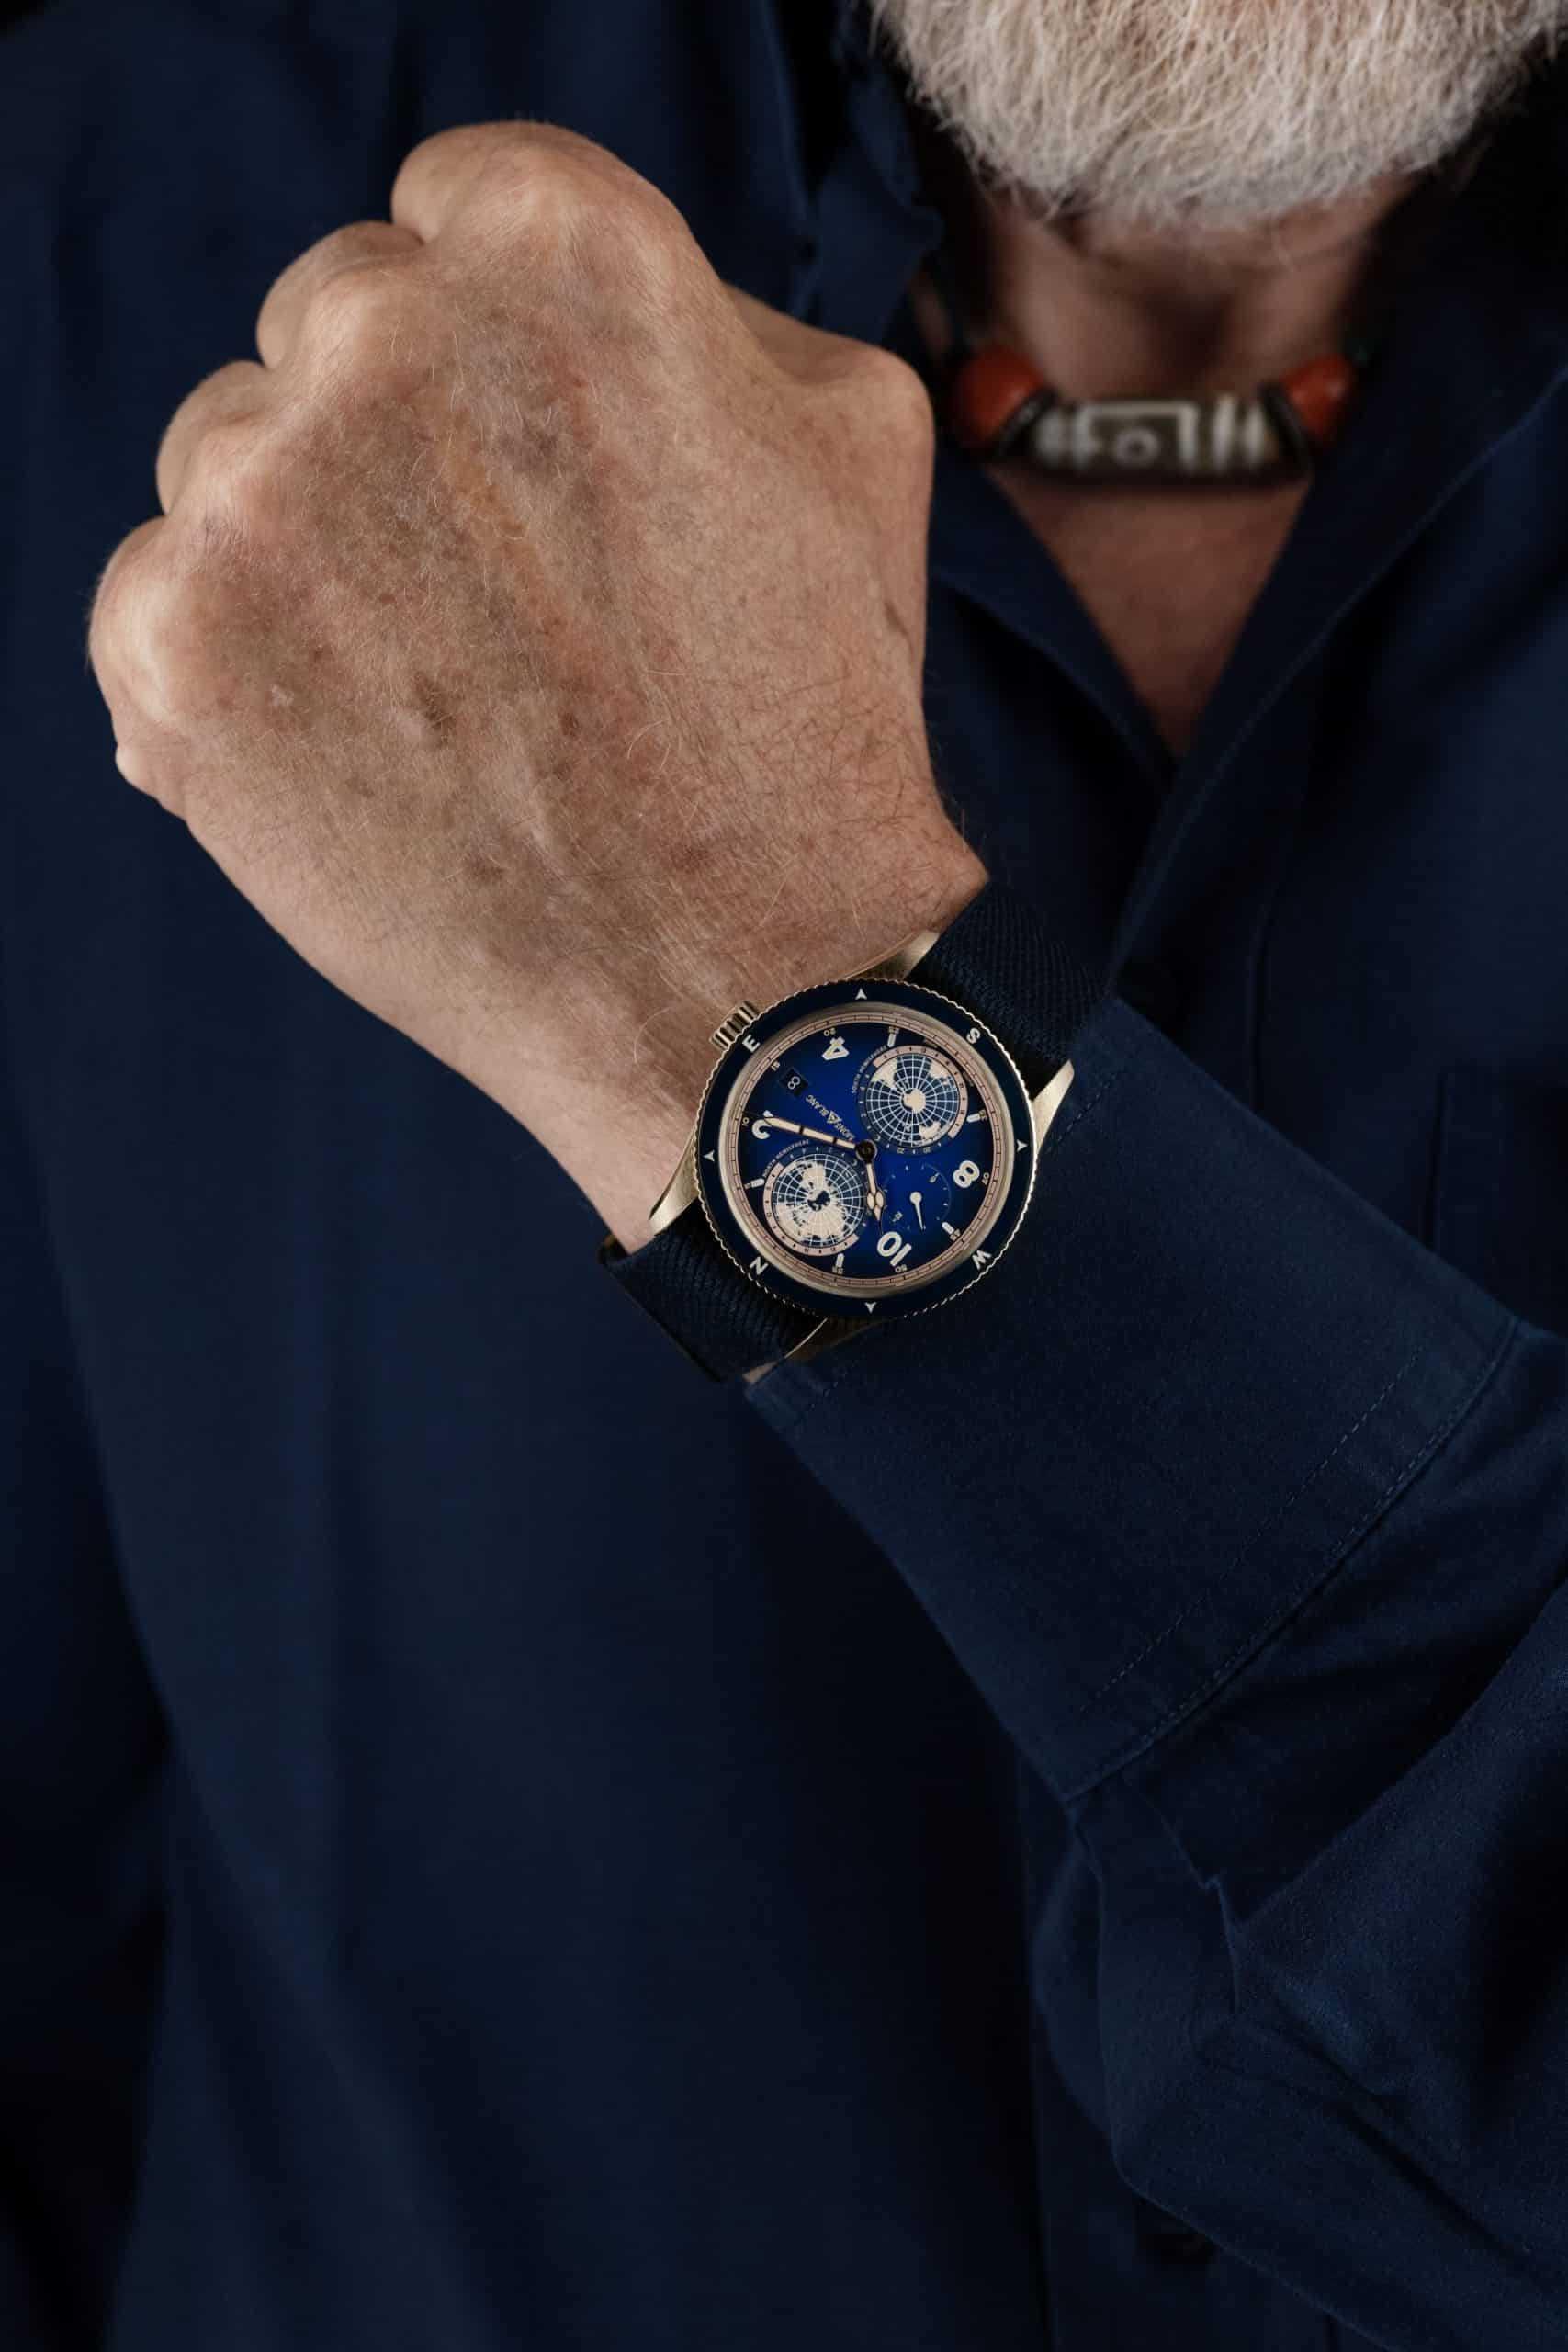 Montblanc 1858 Geosphere Reinhold Messner LE 262 Ref. 126361 04 scaled